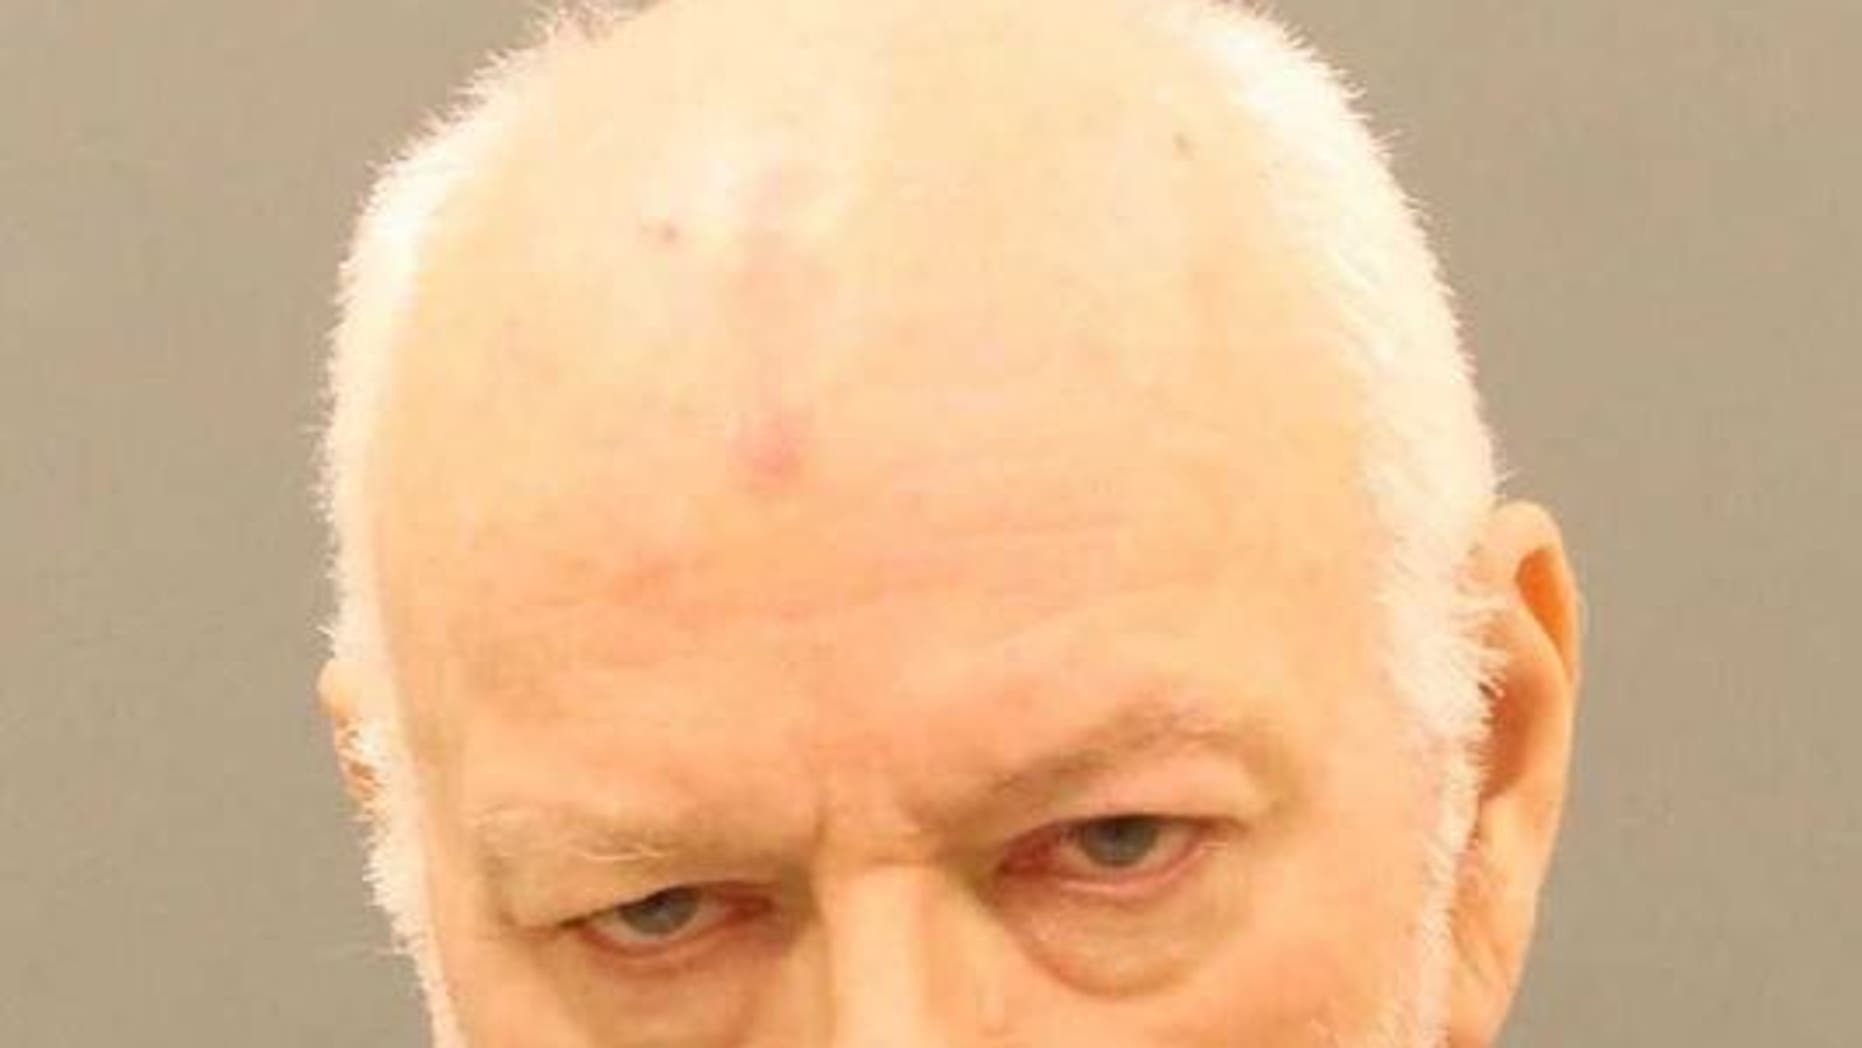 William Wolford, 66, was charged with simple assault in connection with using a leash on his wife, authorities said.